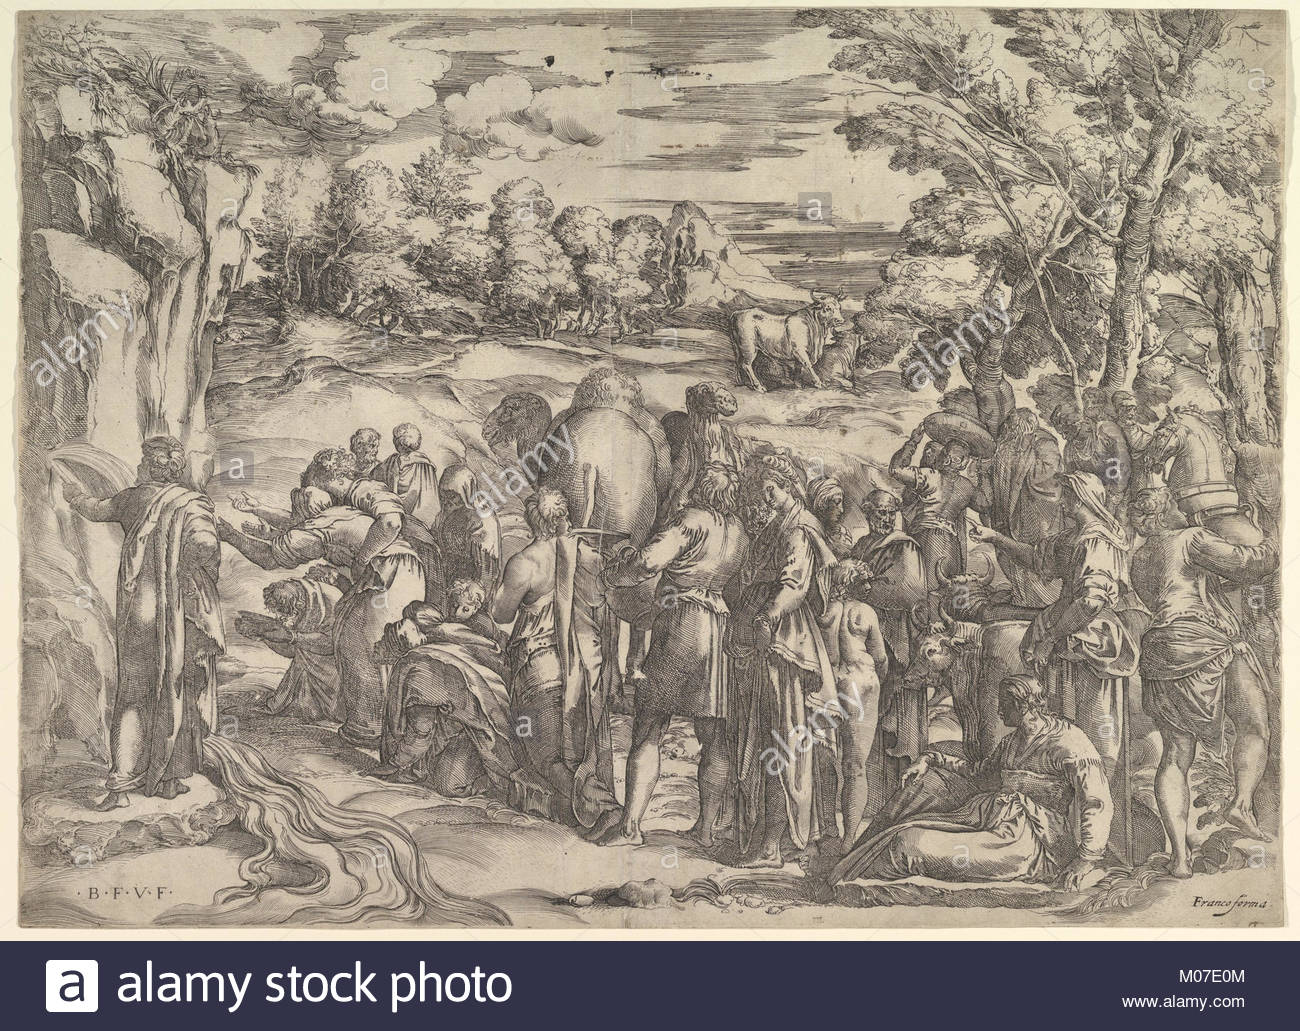 1300x1031 Moses Drawing Water From The Rock Met Dp819635 Stock Photo